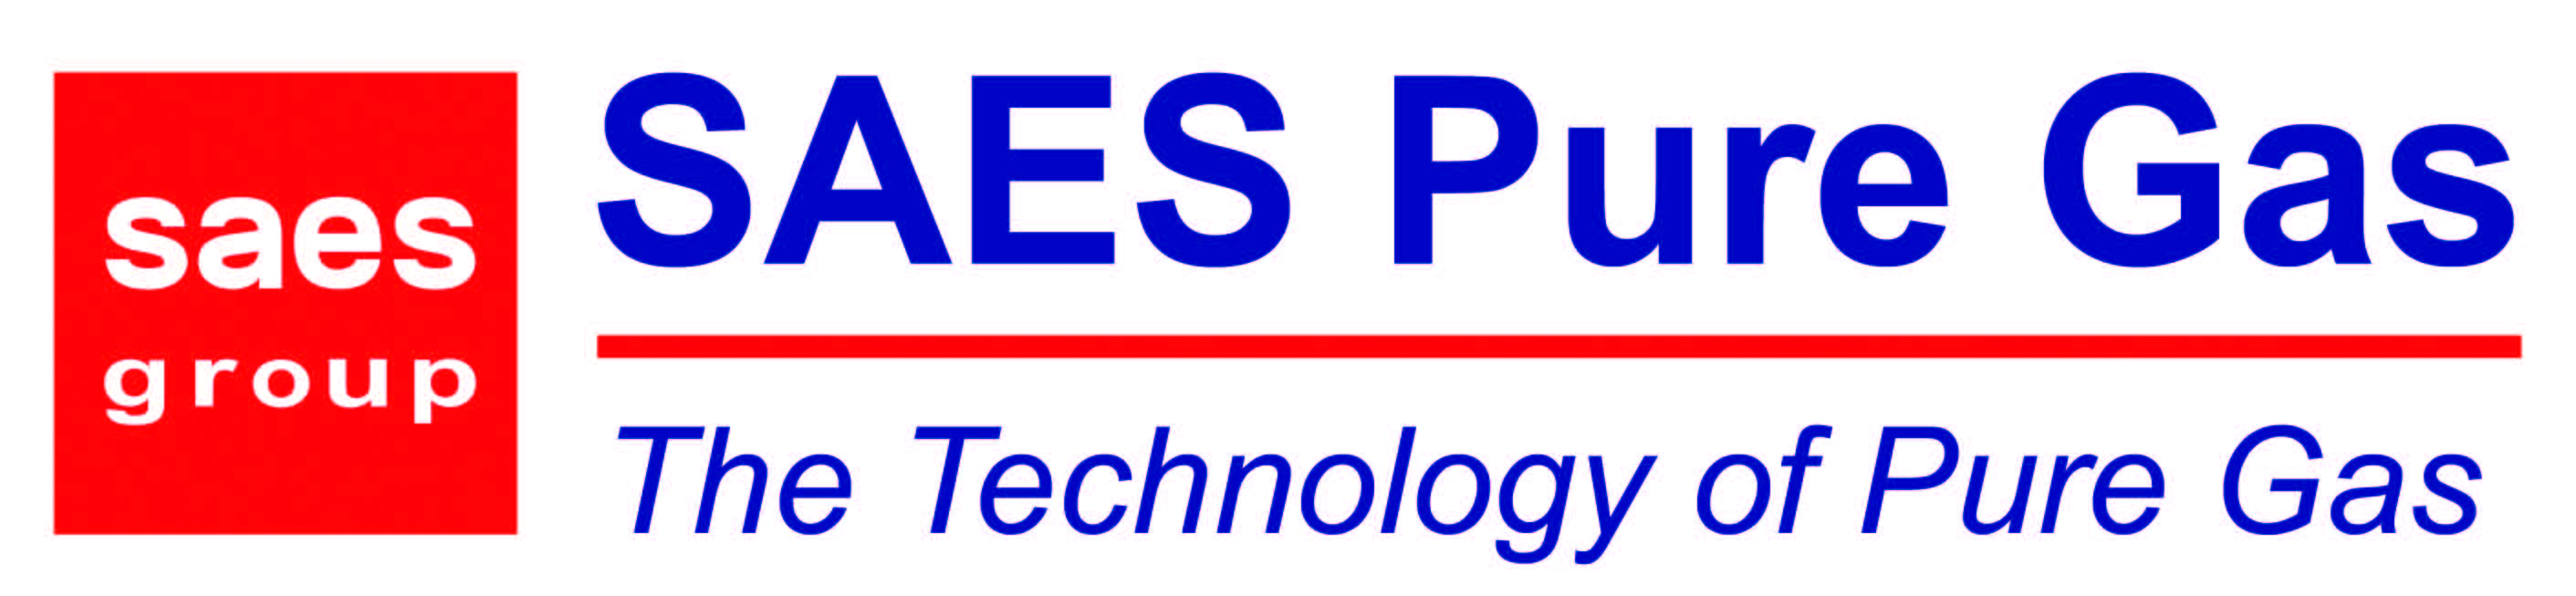 SAES Pure Gas Logo